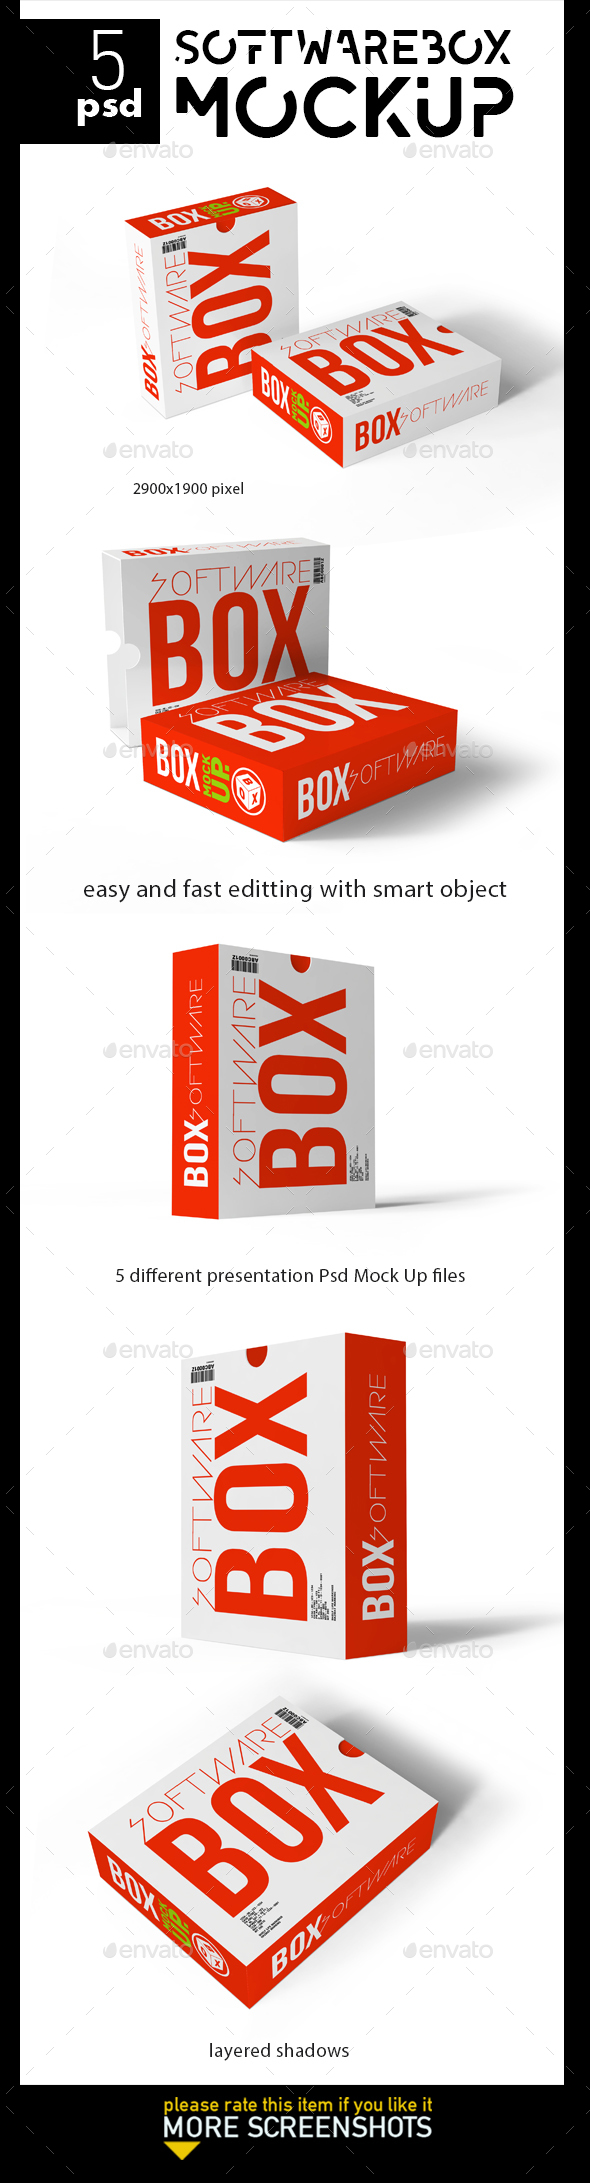 Software Box-Mock Up - Product Mock-Ups Graphics